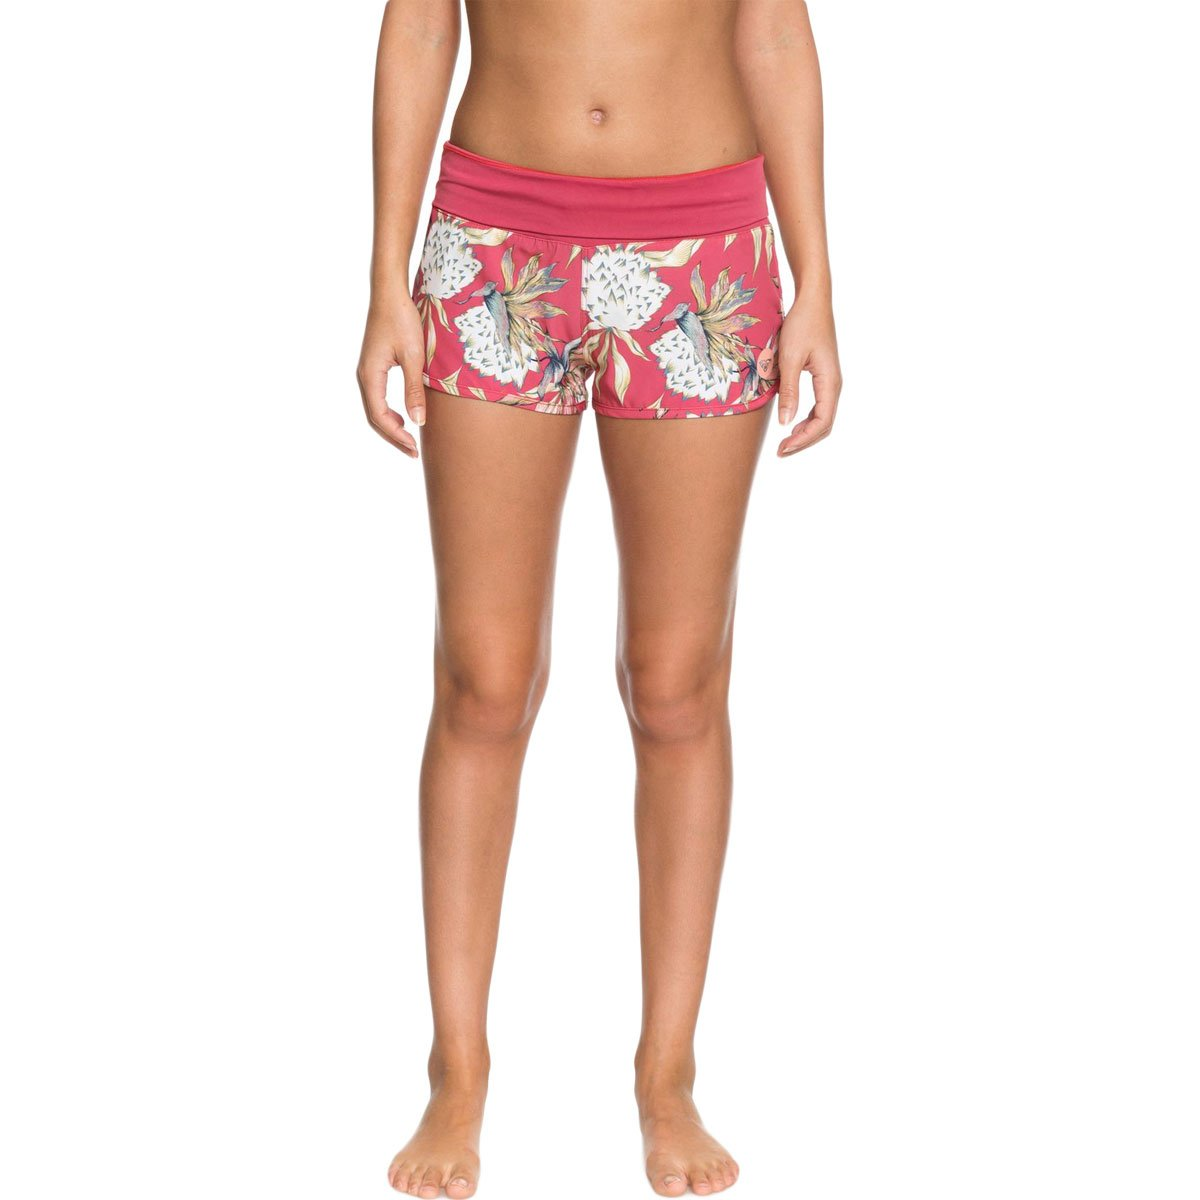 Roxy Women's Endless Summer Printed Boardshort, Holly Berry Swim House of The, S